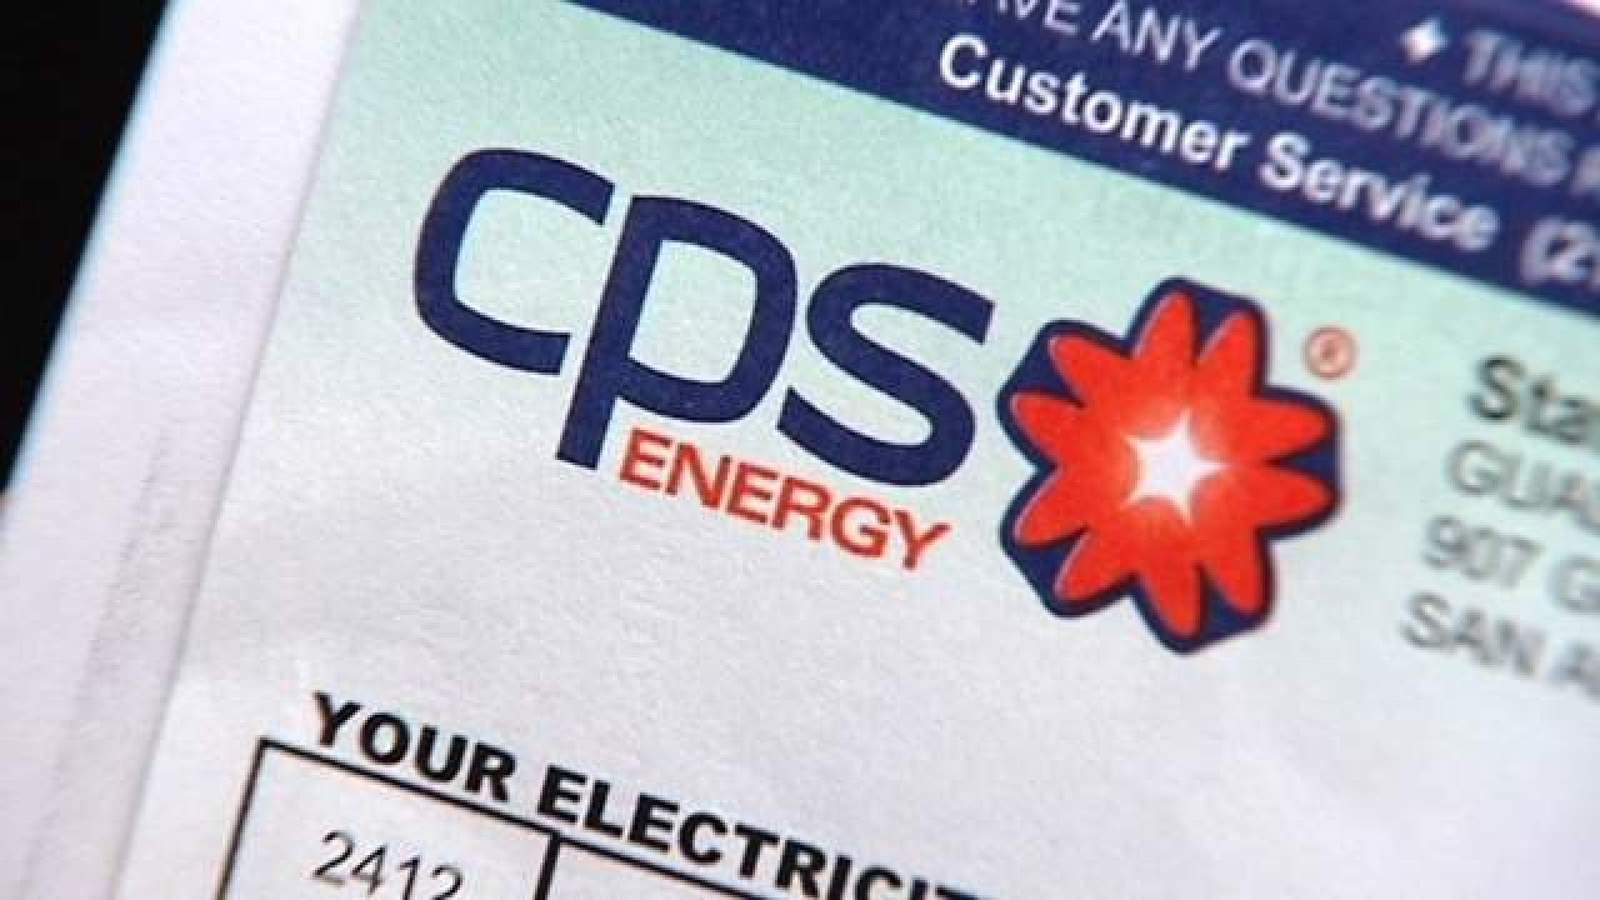 CPS Energy's one-time credit for most customers out of power during wi... image